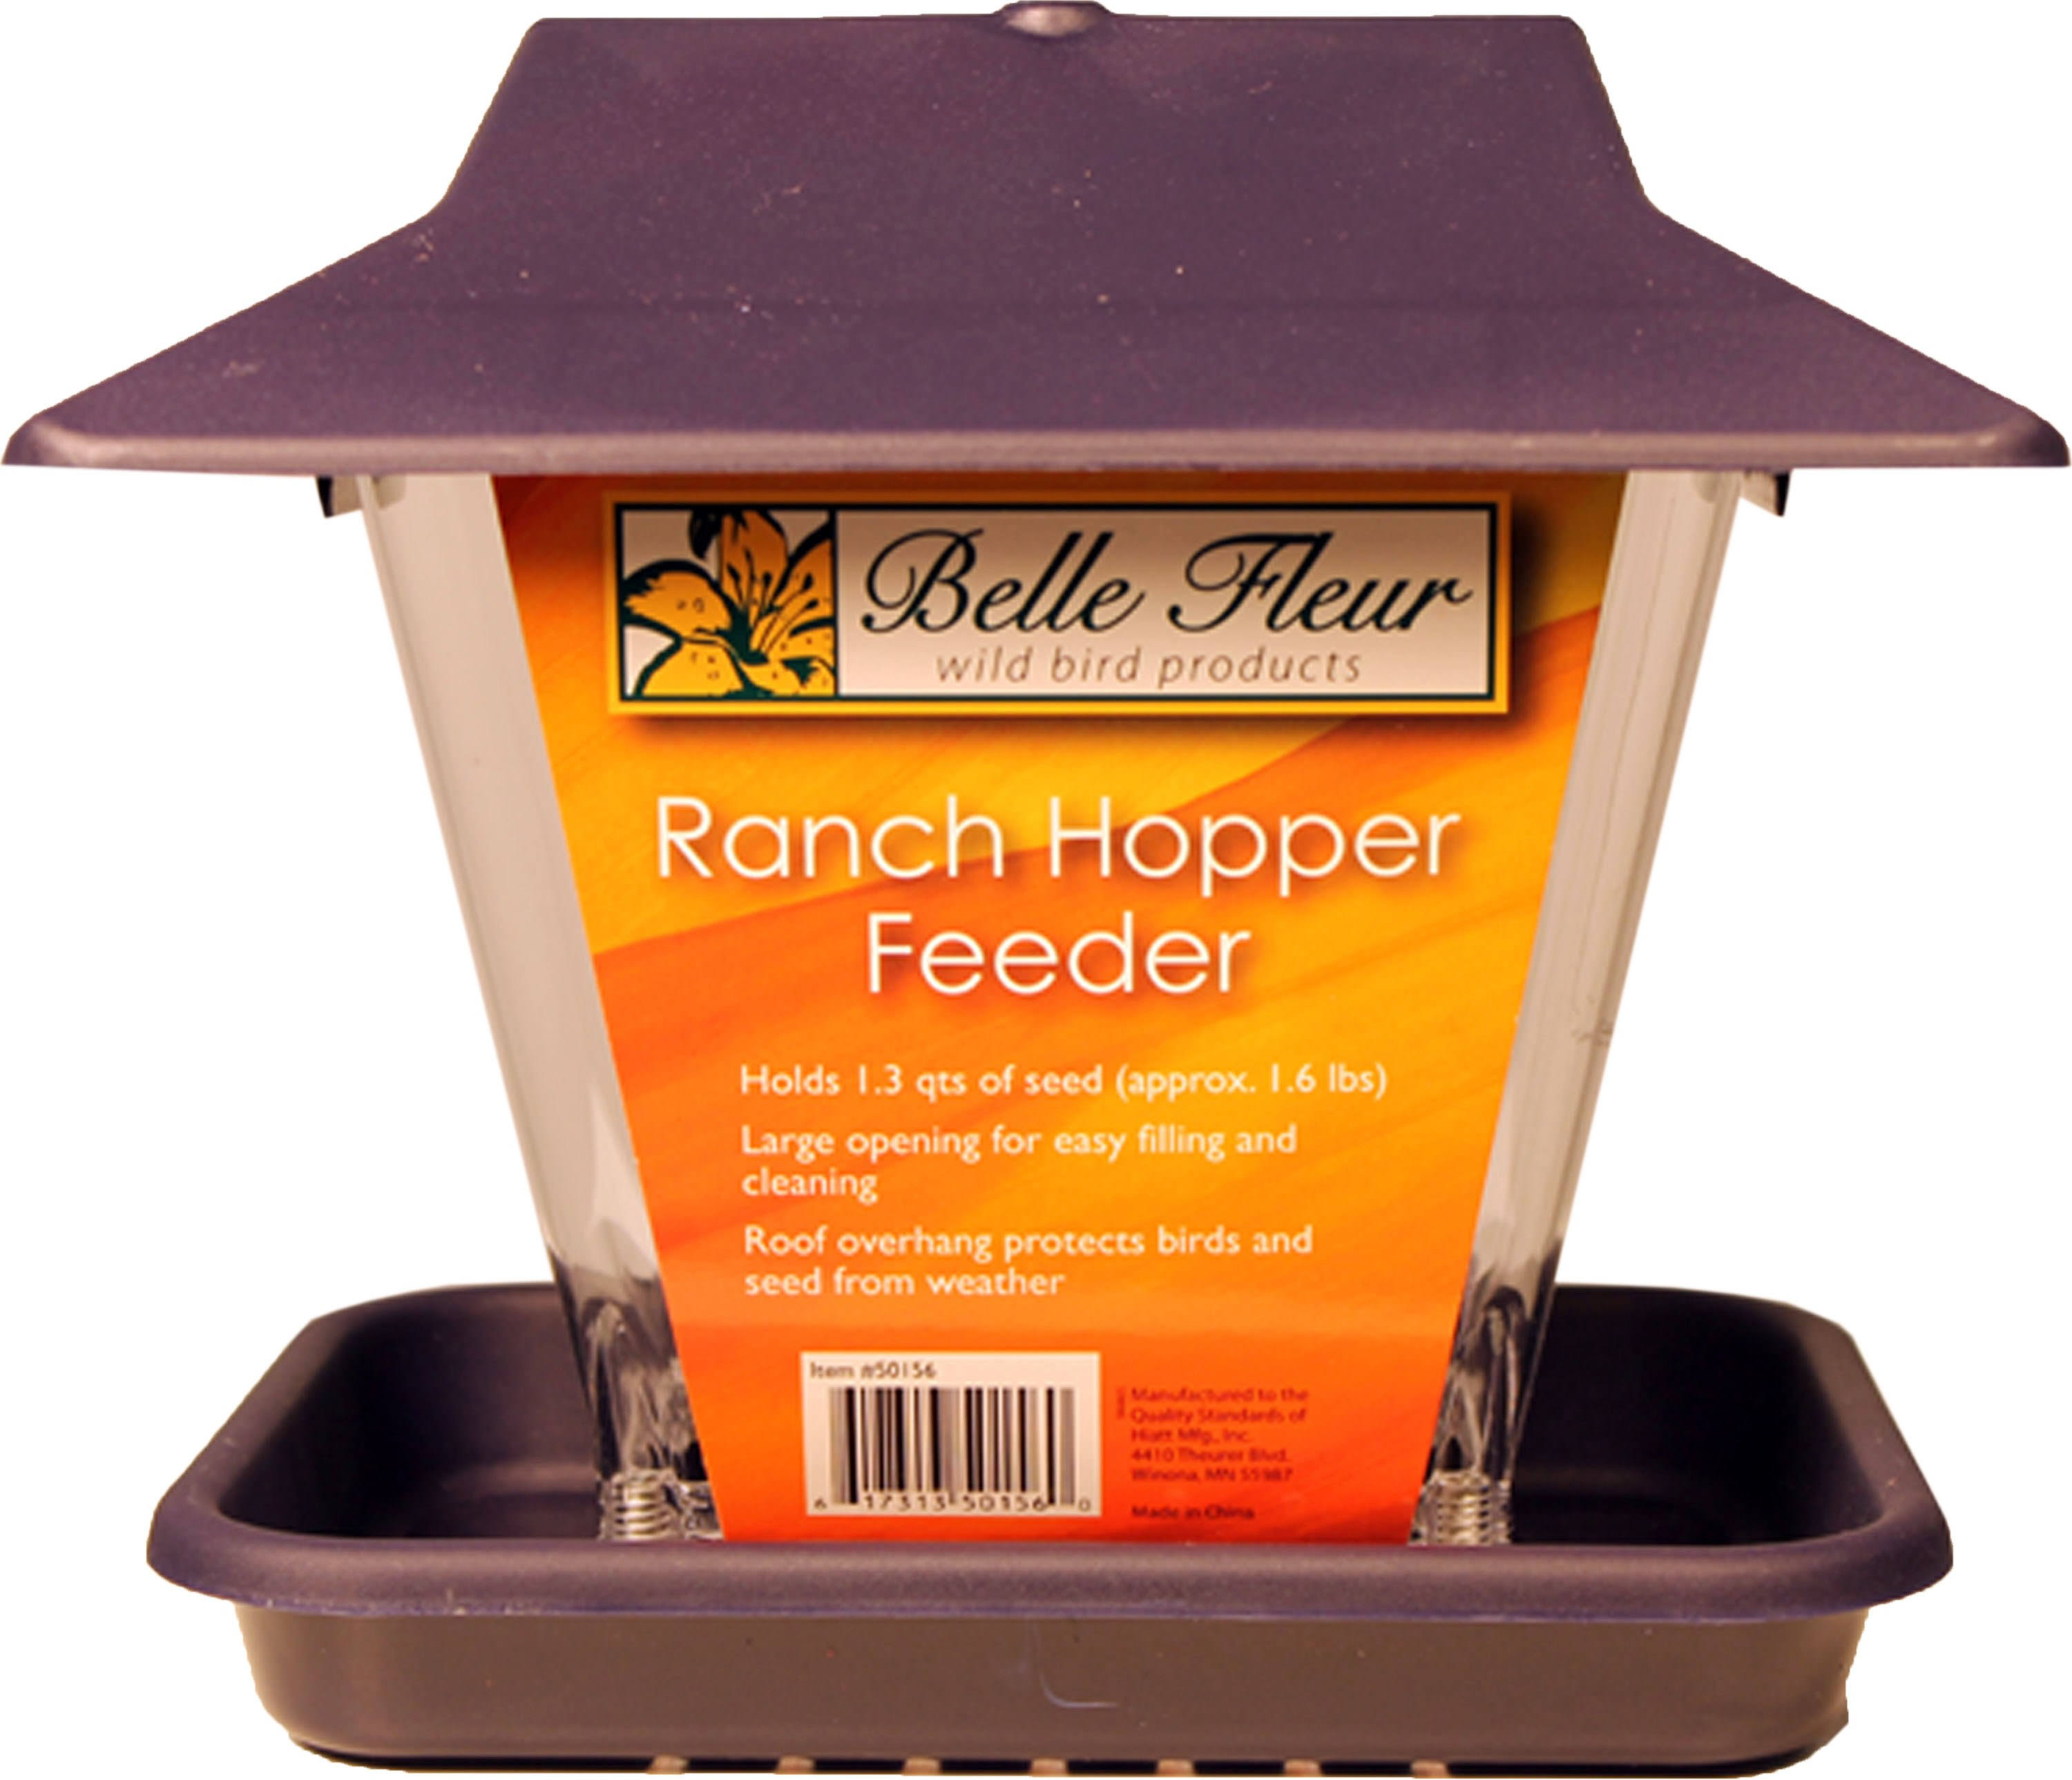 Hiatt 50156 Ranch Hopper Bird Feeder - 1.6lbs Capacity